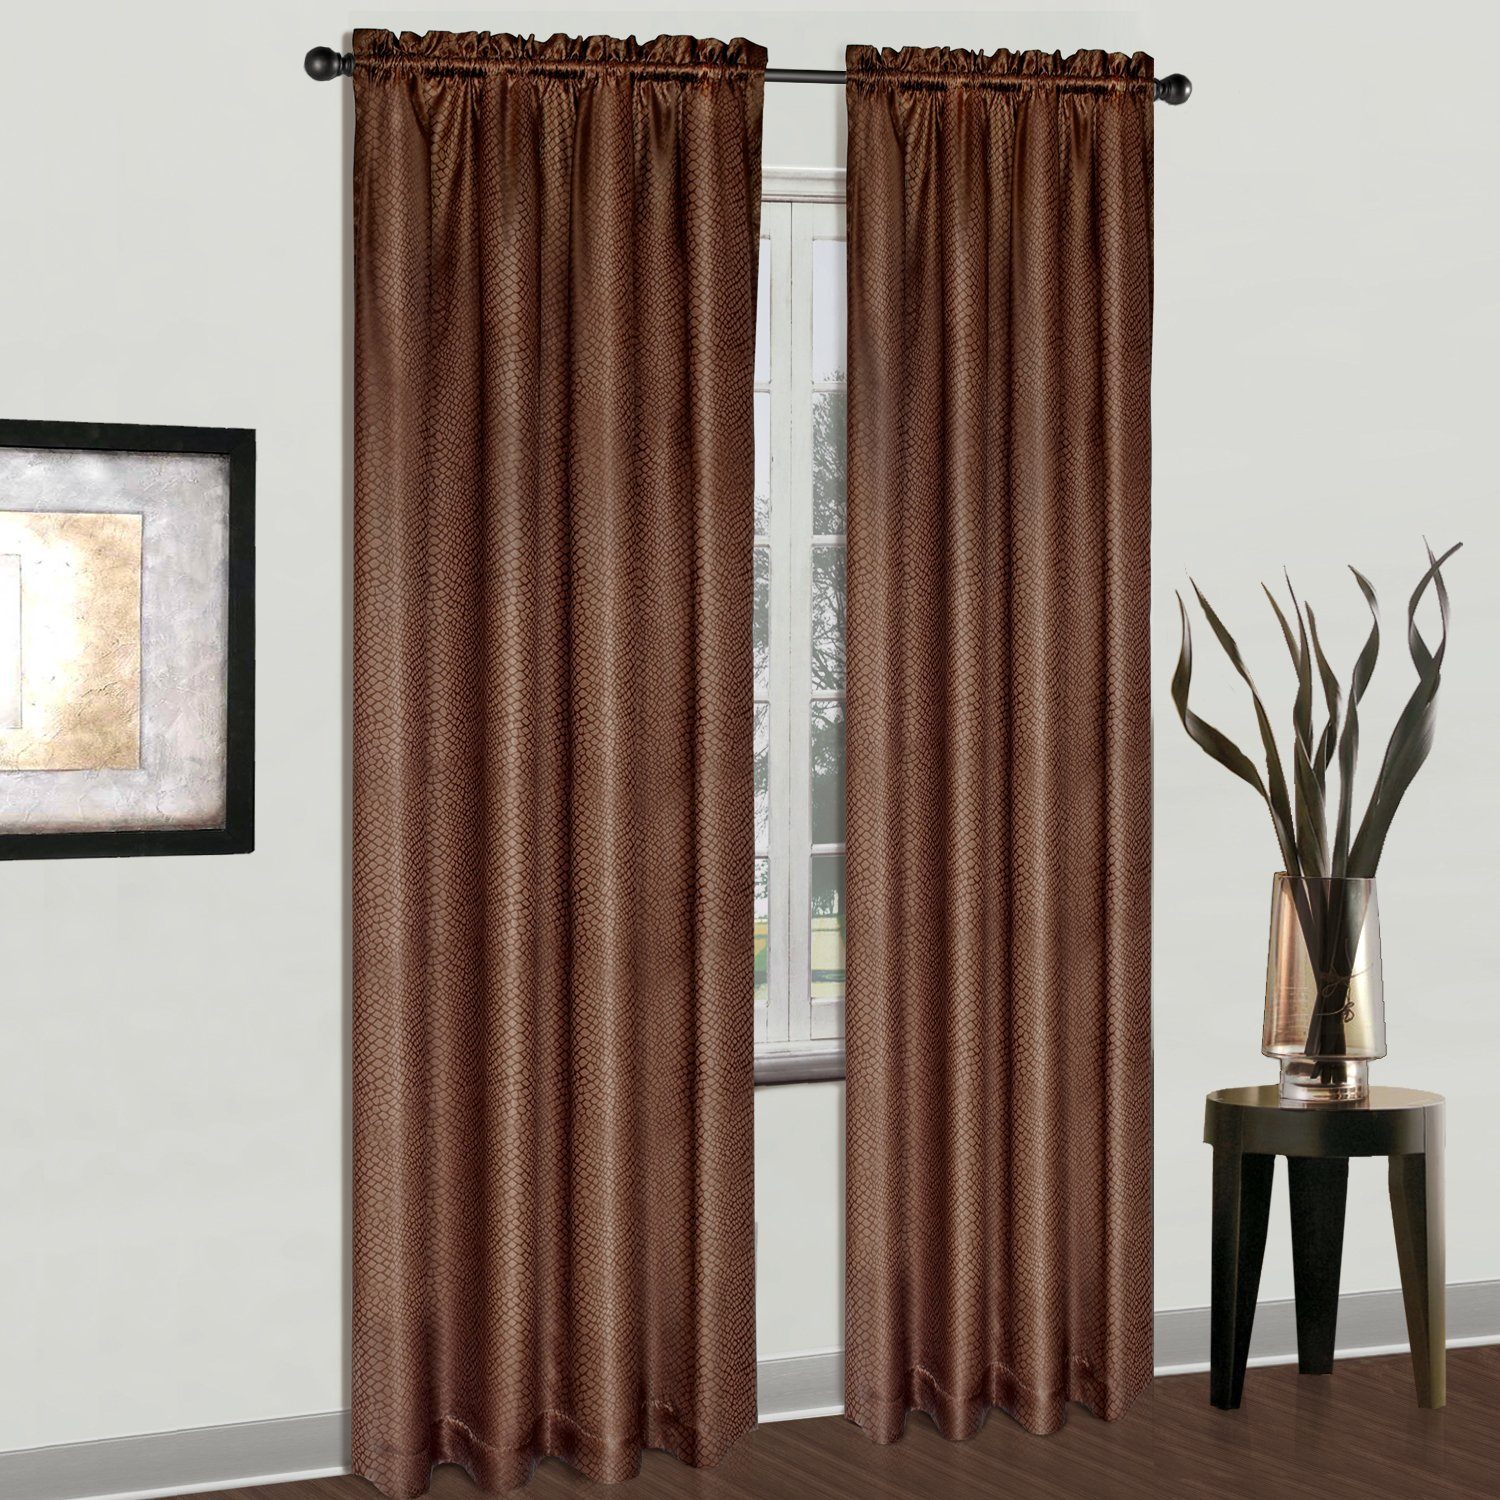 American Curtain and Home Carlton Window Curtain 54-Inch by 84-Inch Chocolate